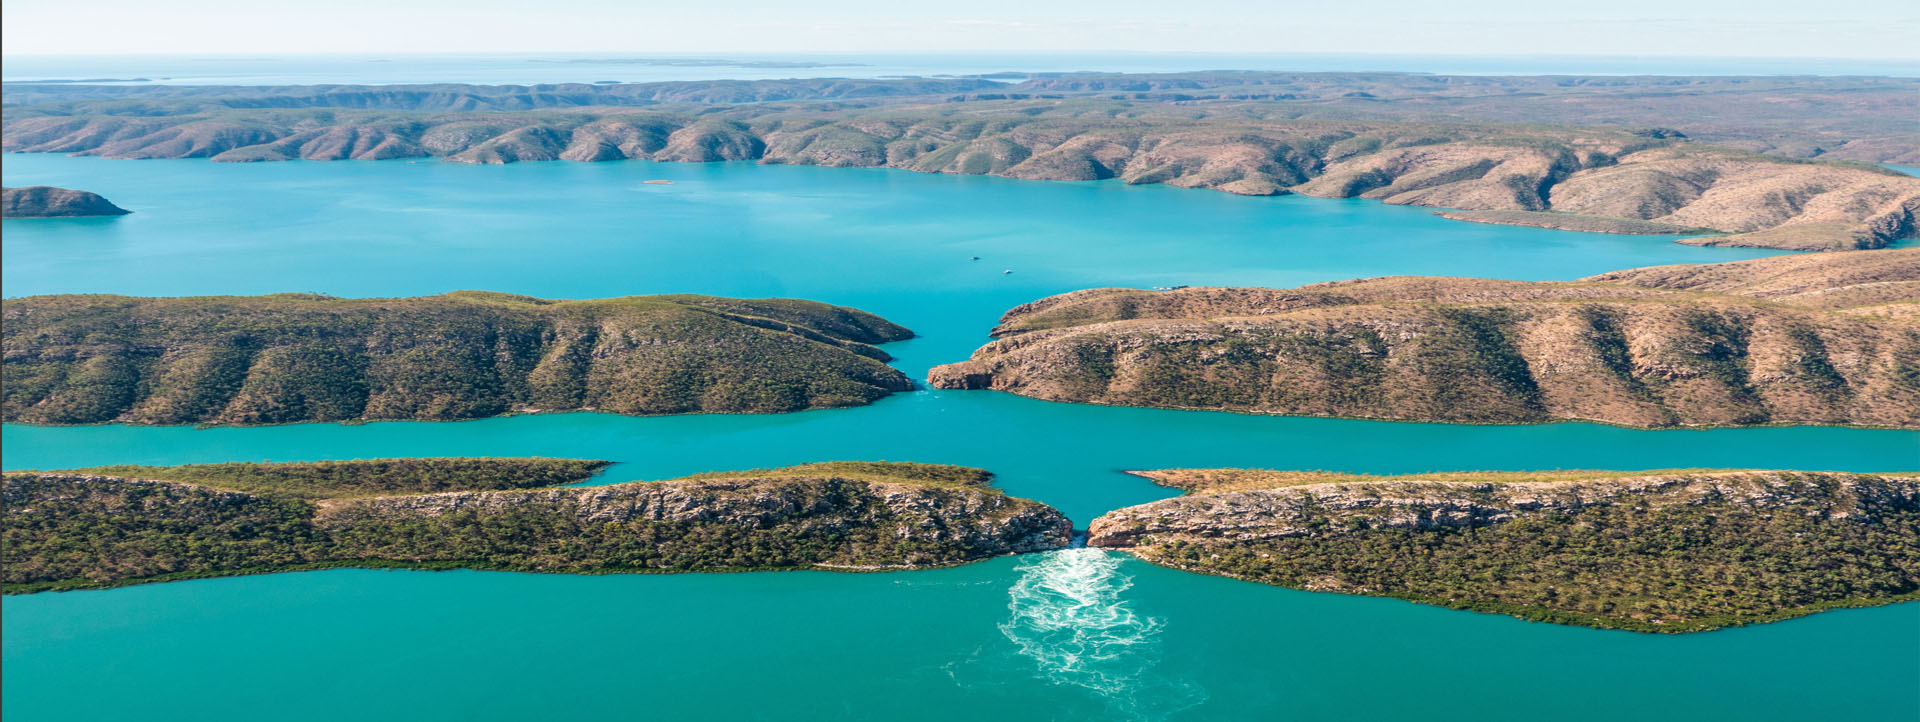 HORIZONTAL-FALLS-highlights scenic tour helicopter